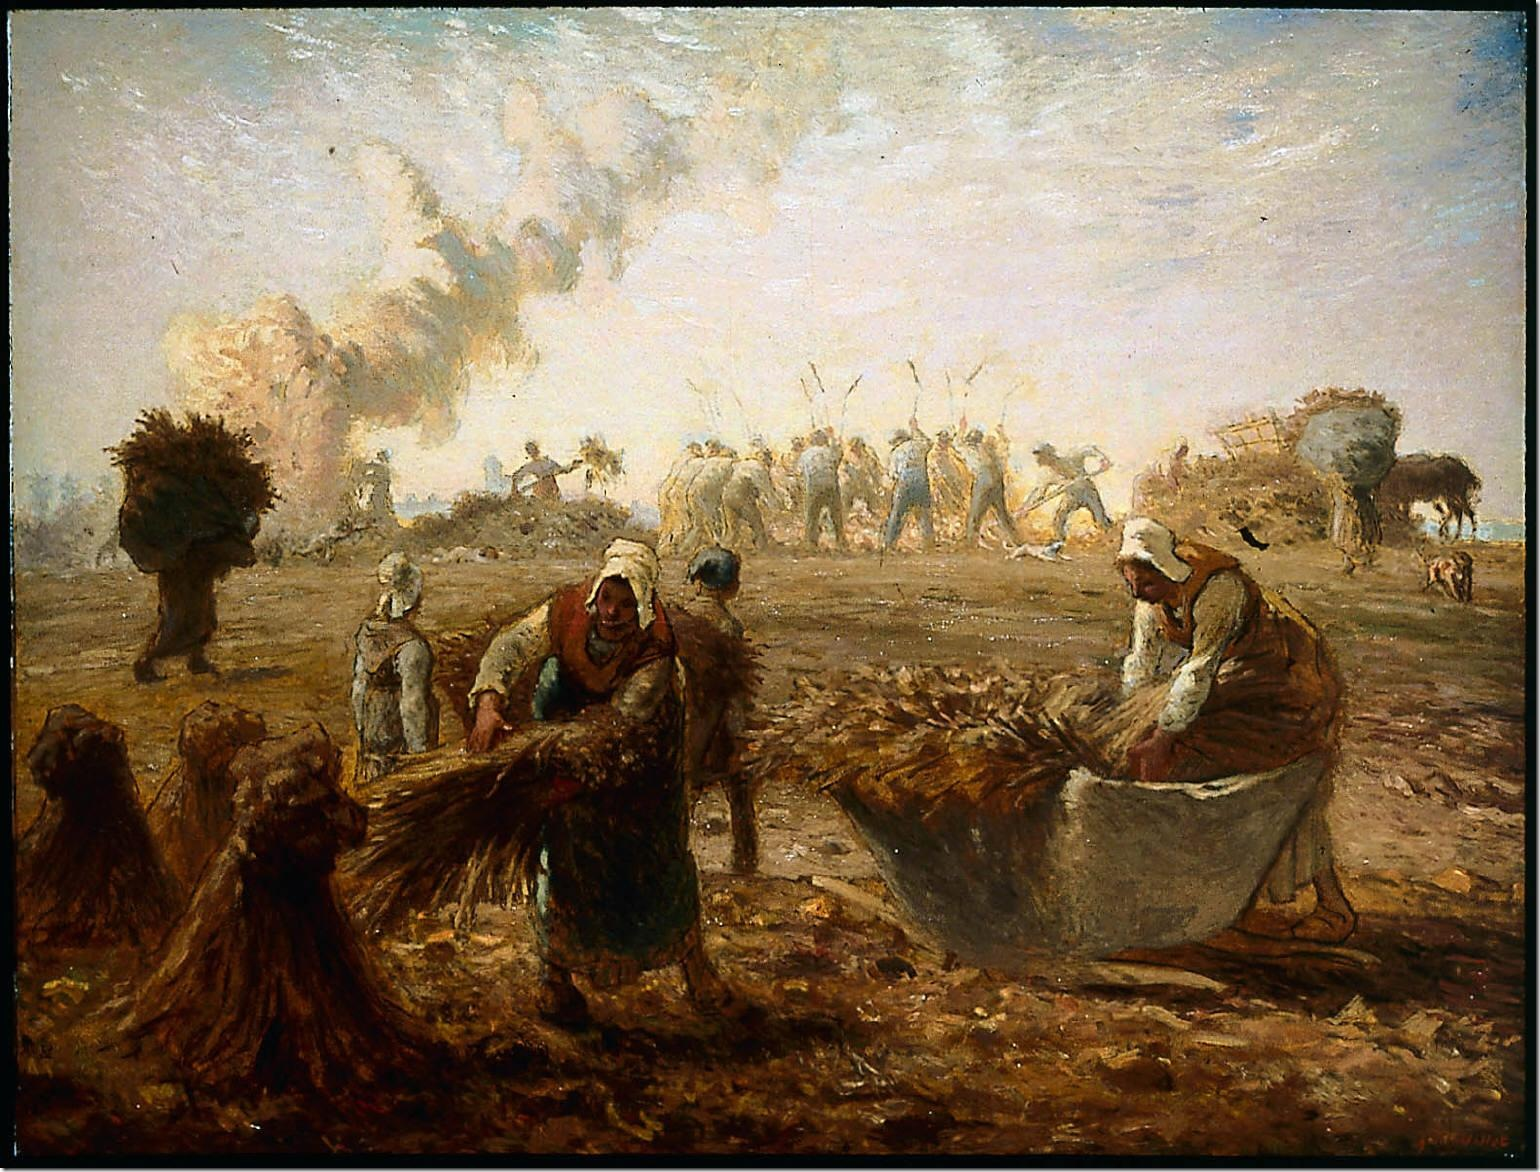 Jean-François-Millet-Buckwheat-Harvest,-Summer-1868-74-painting-artwork-print